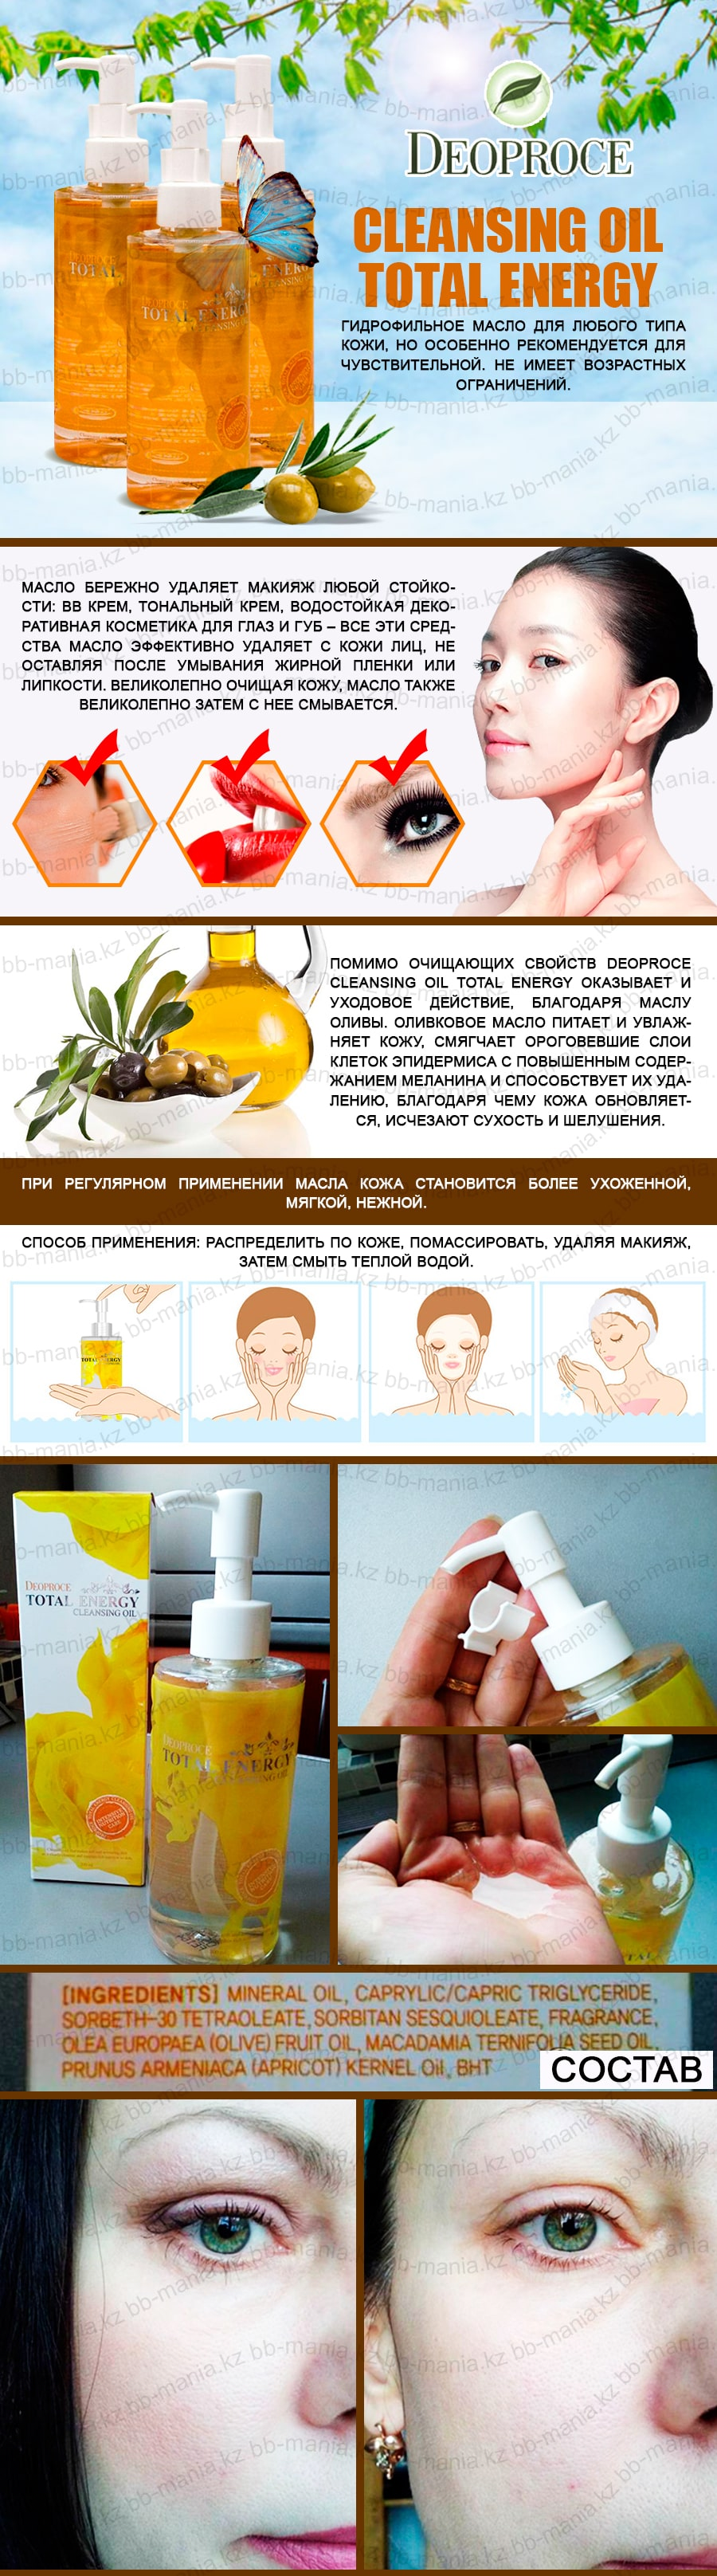 Cleansing-Oil-Total-Energy-[Deoproce]-min